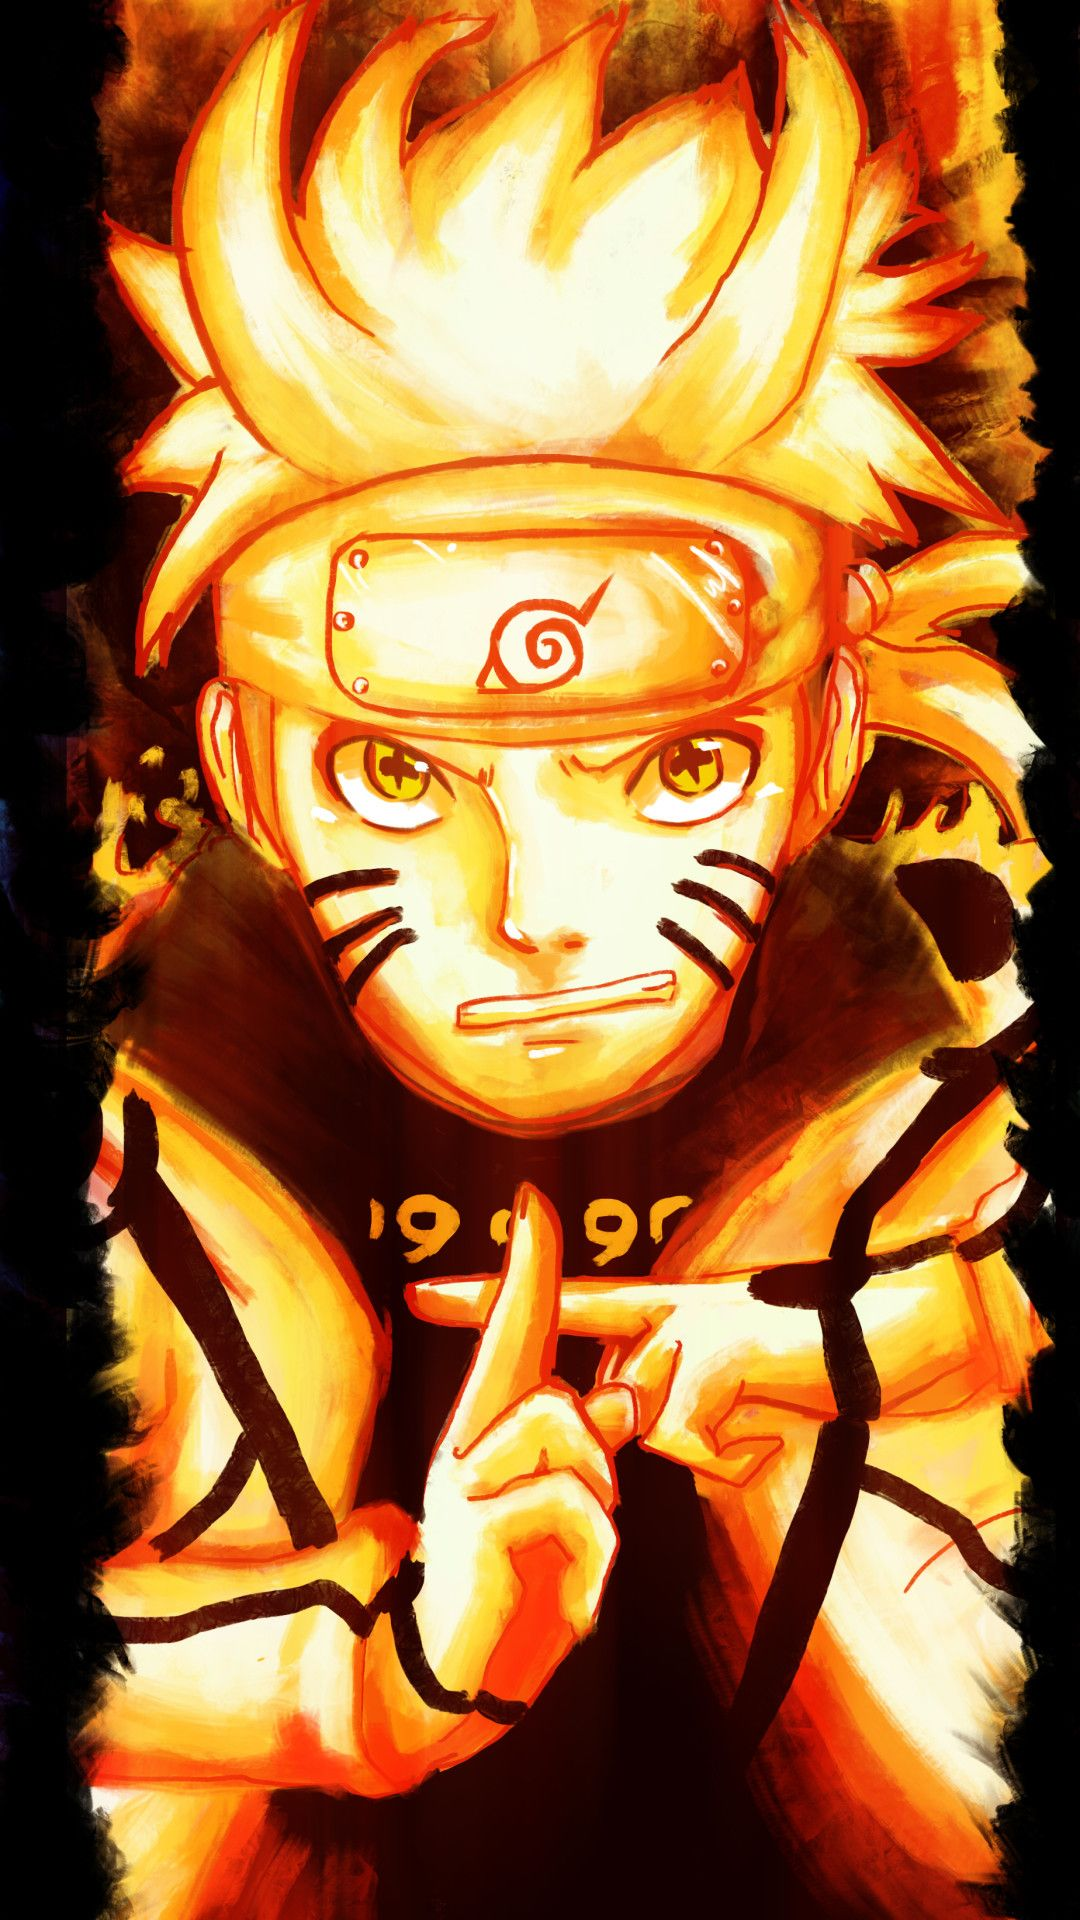 Get Anime Wallpaper 4k For Iphone Gif In 2020 Naruto Wallpaper Iphone Naruto Wallpaper Naruto Phone Wallpaper